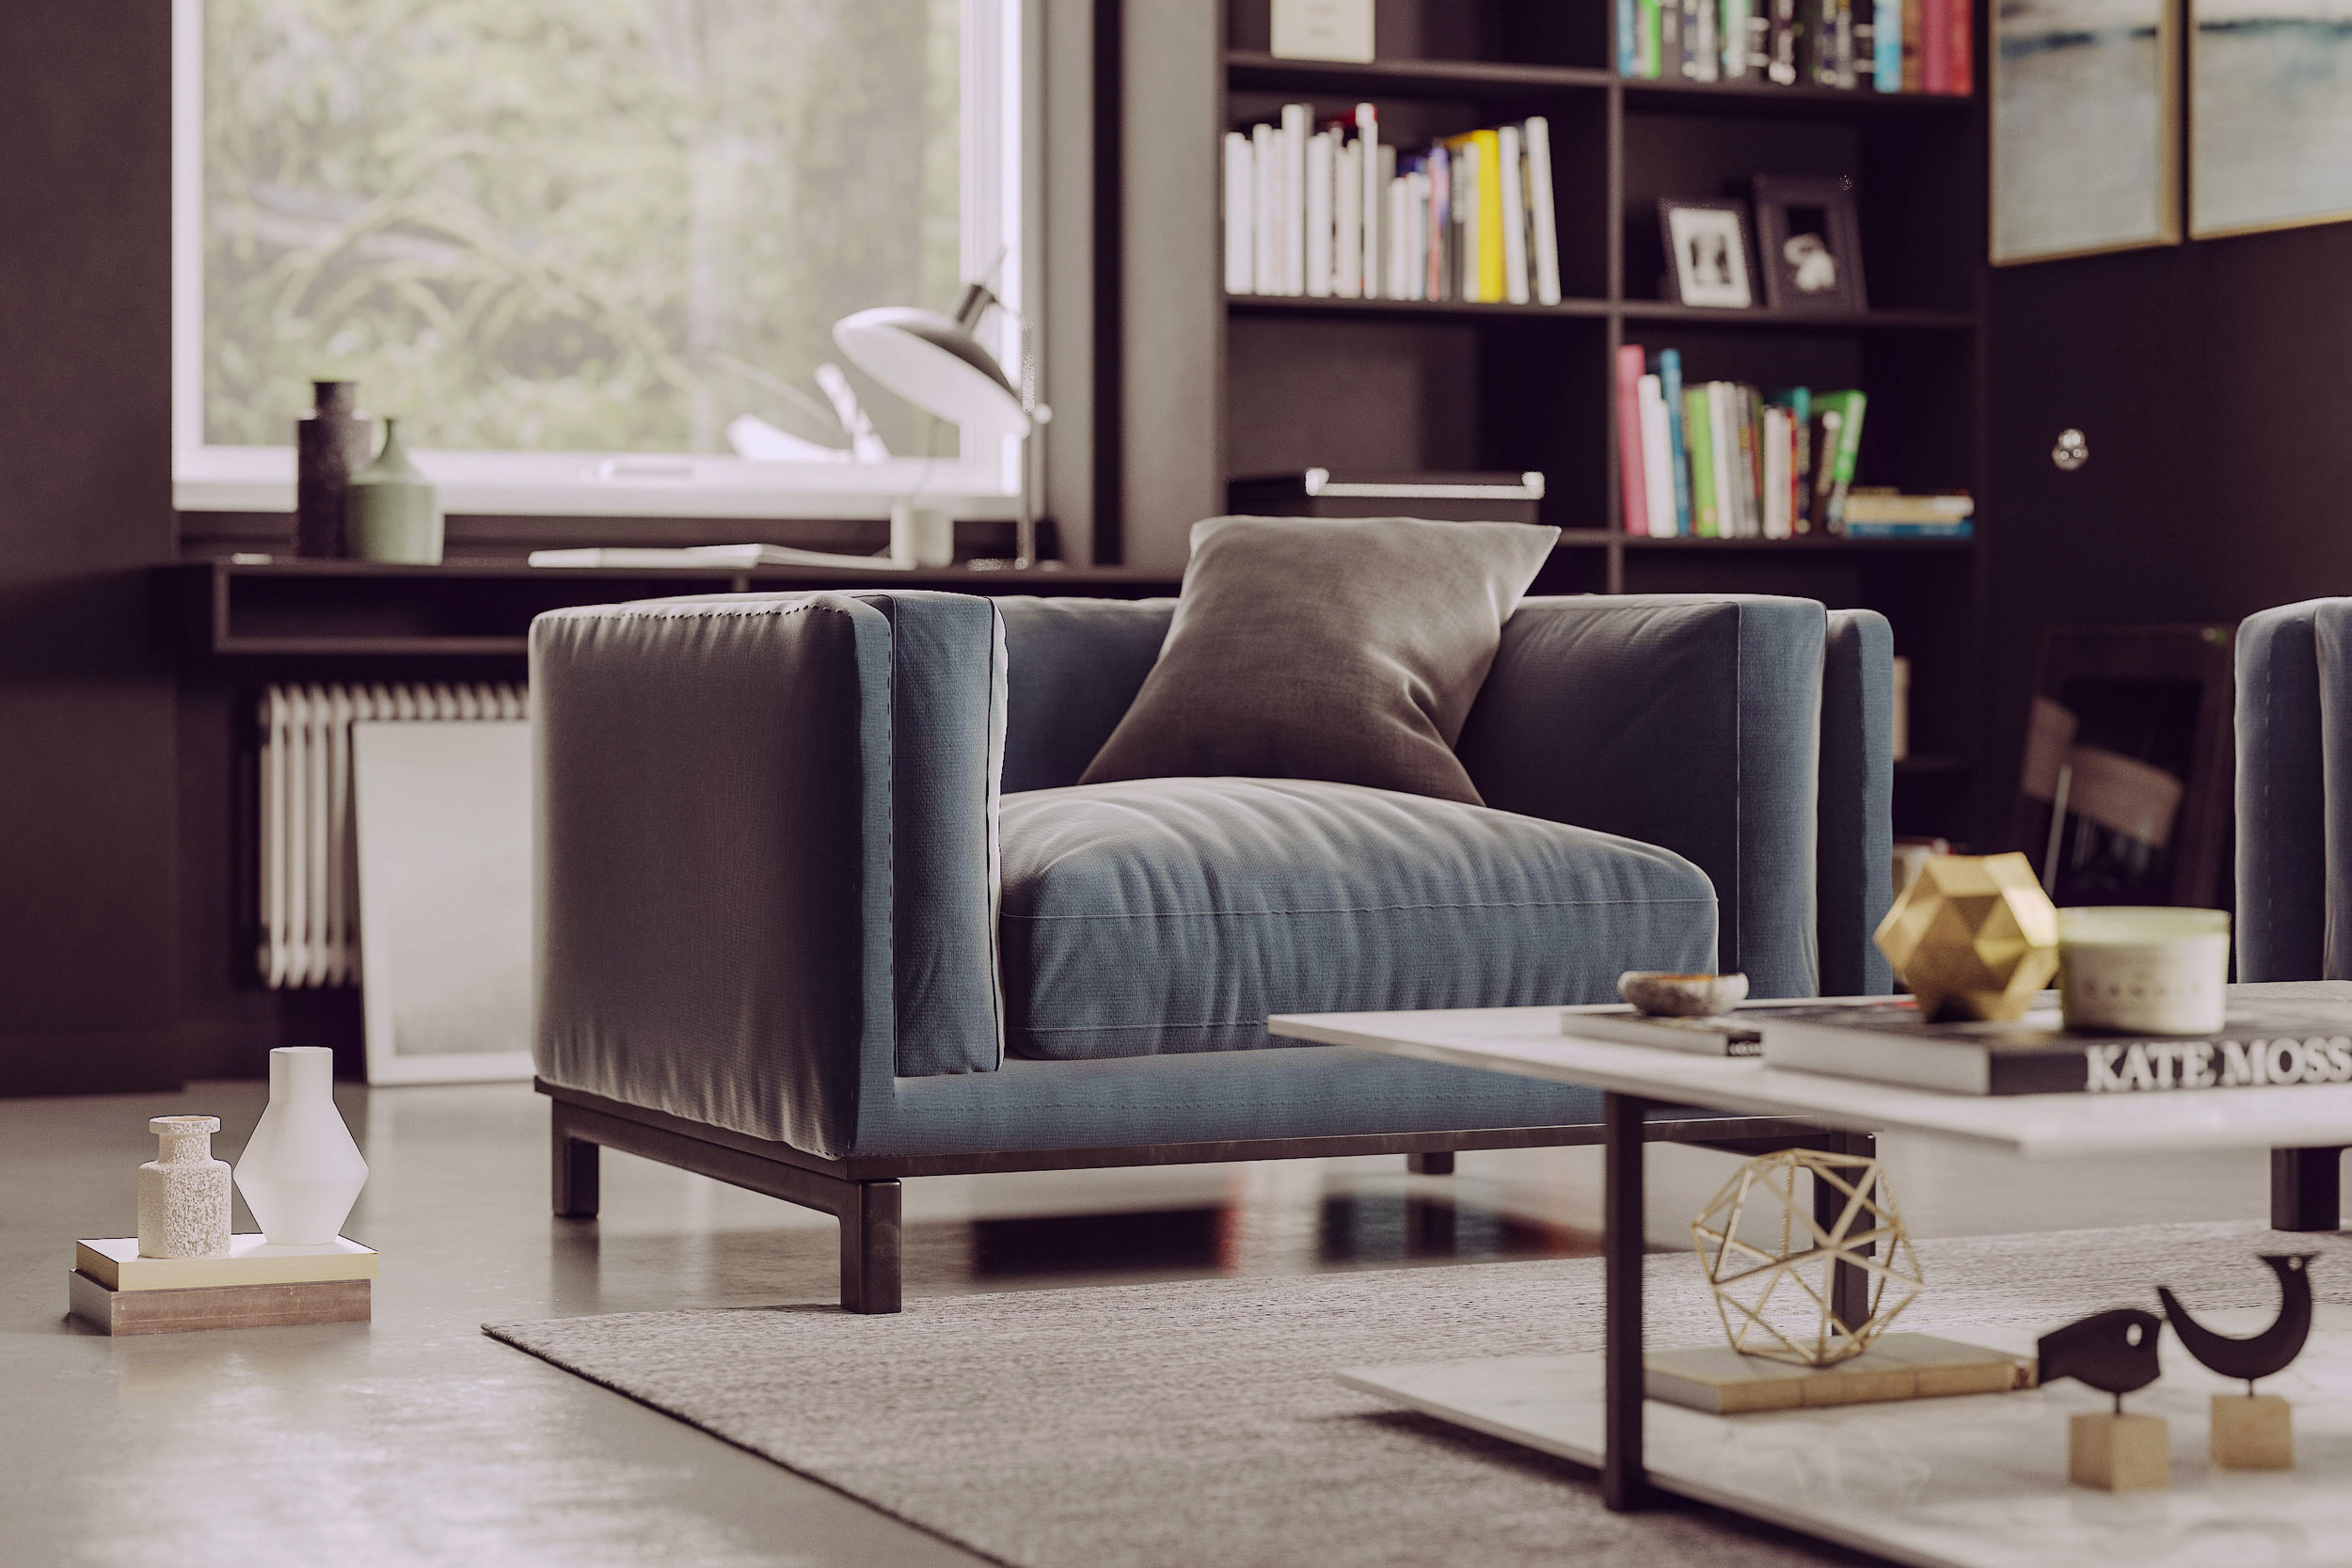 3dsmax and V-Ray sofa designed and modeled by © Pasquale Scionti